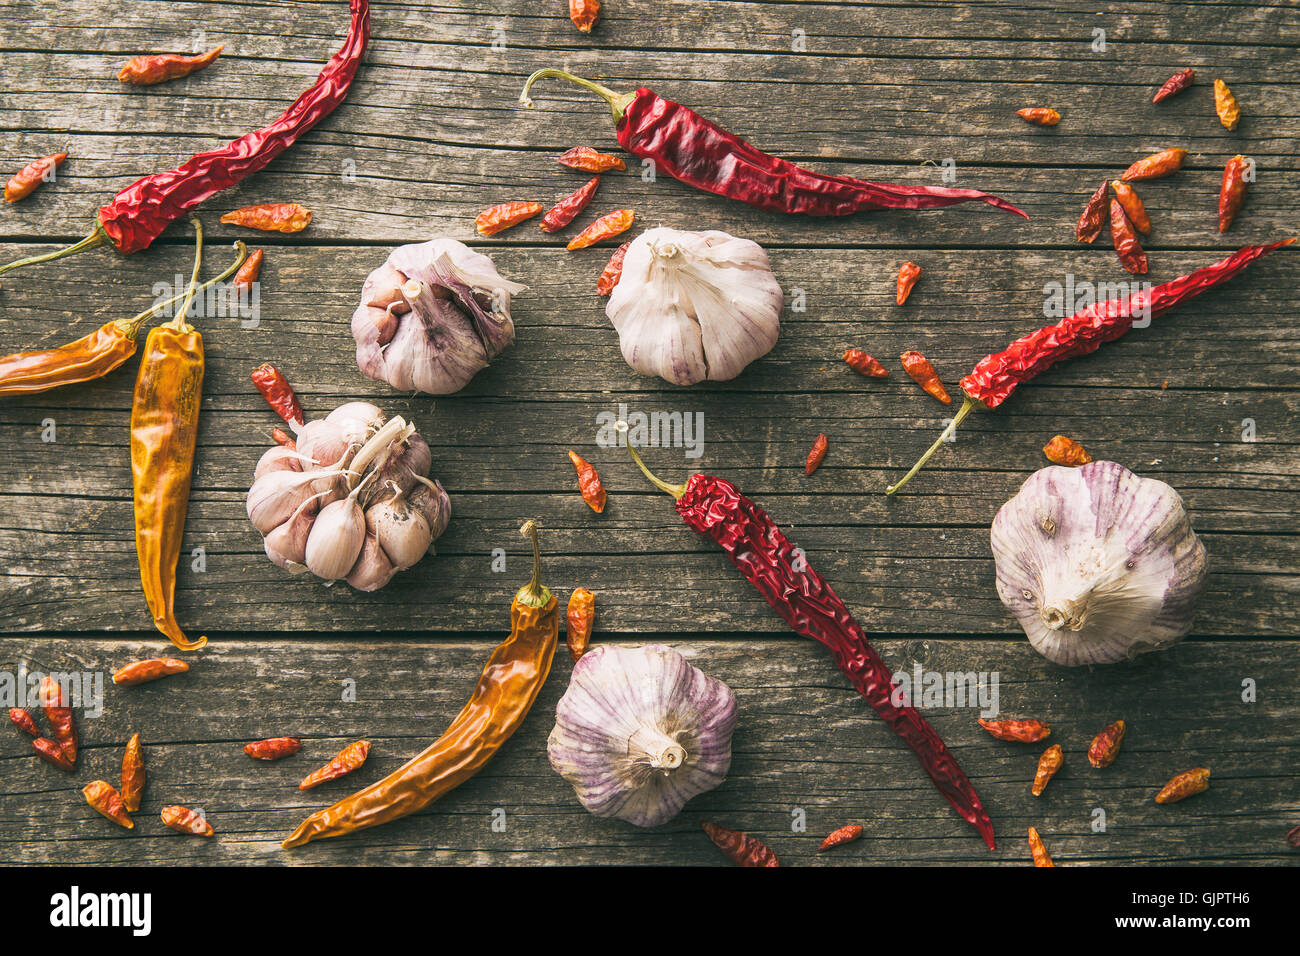 Garlic and chili peppers on old wooden table. Top view. - Stock Image